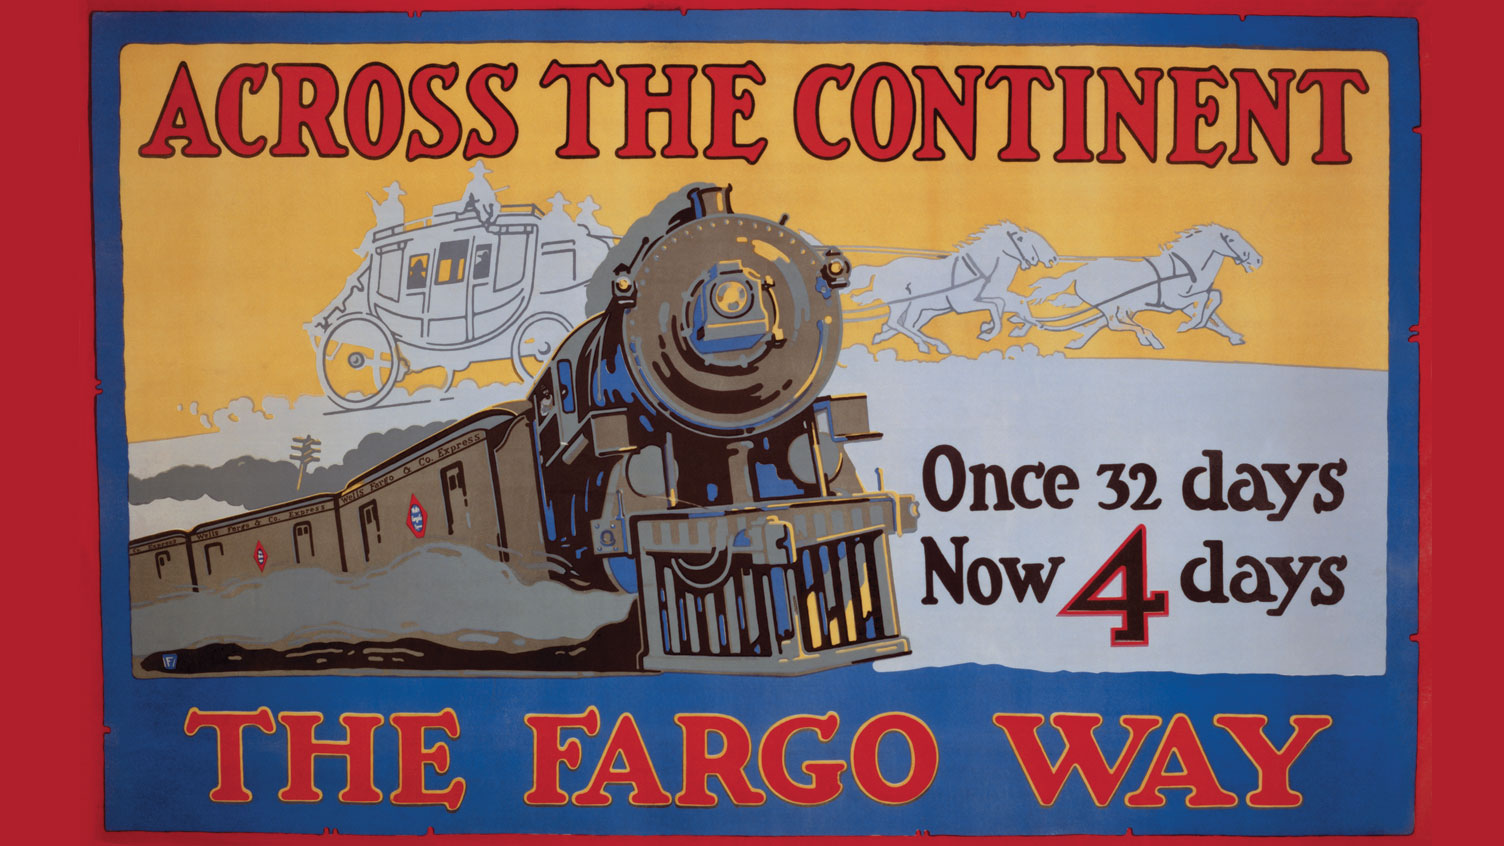 The front of a steam engine train in clear view with the shadow of a stagecoach behind it. Reads: Across the Continent the Fargo Way. Once 32 days Now 4 days.